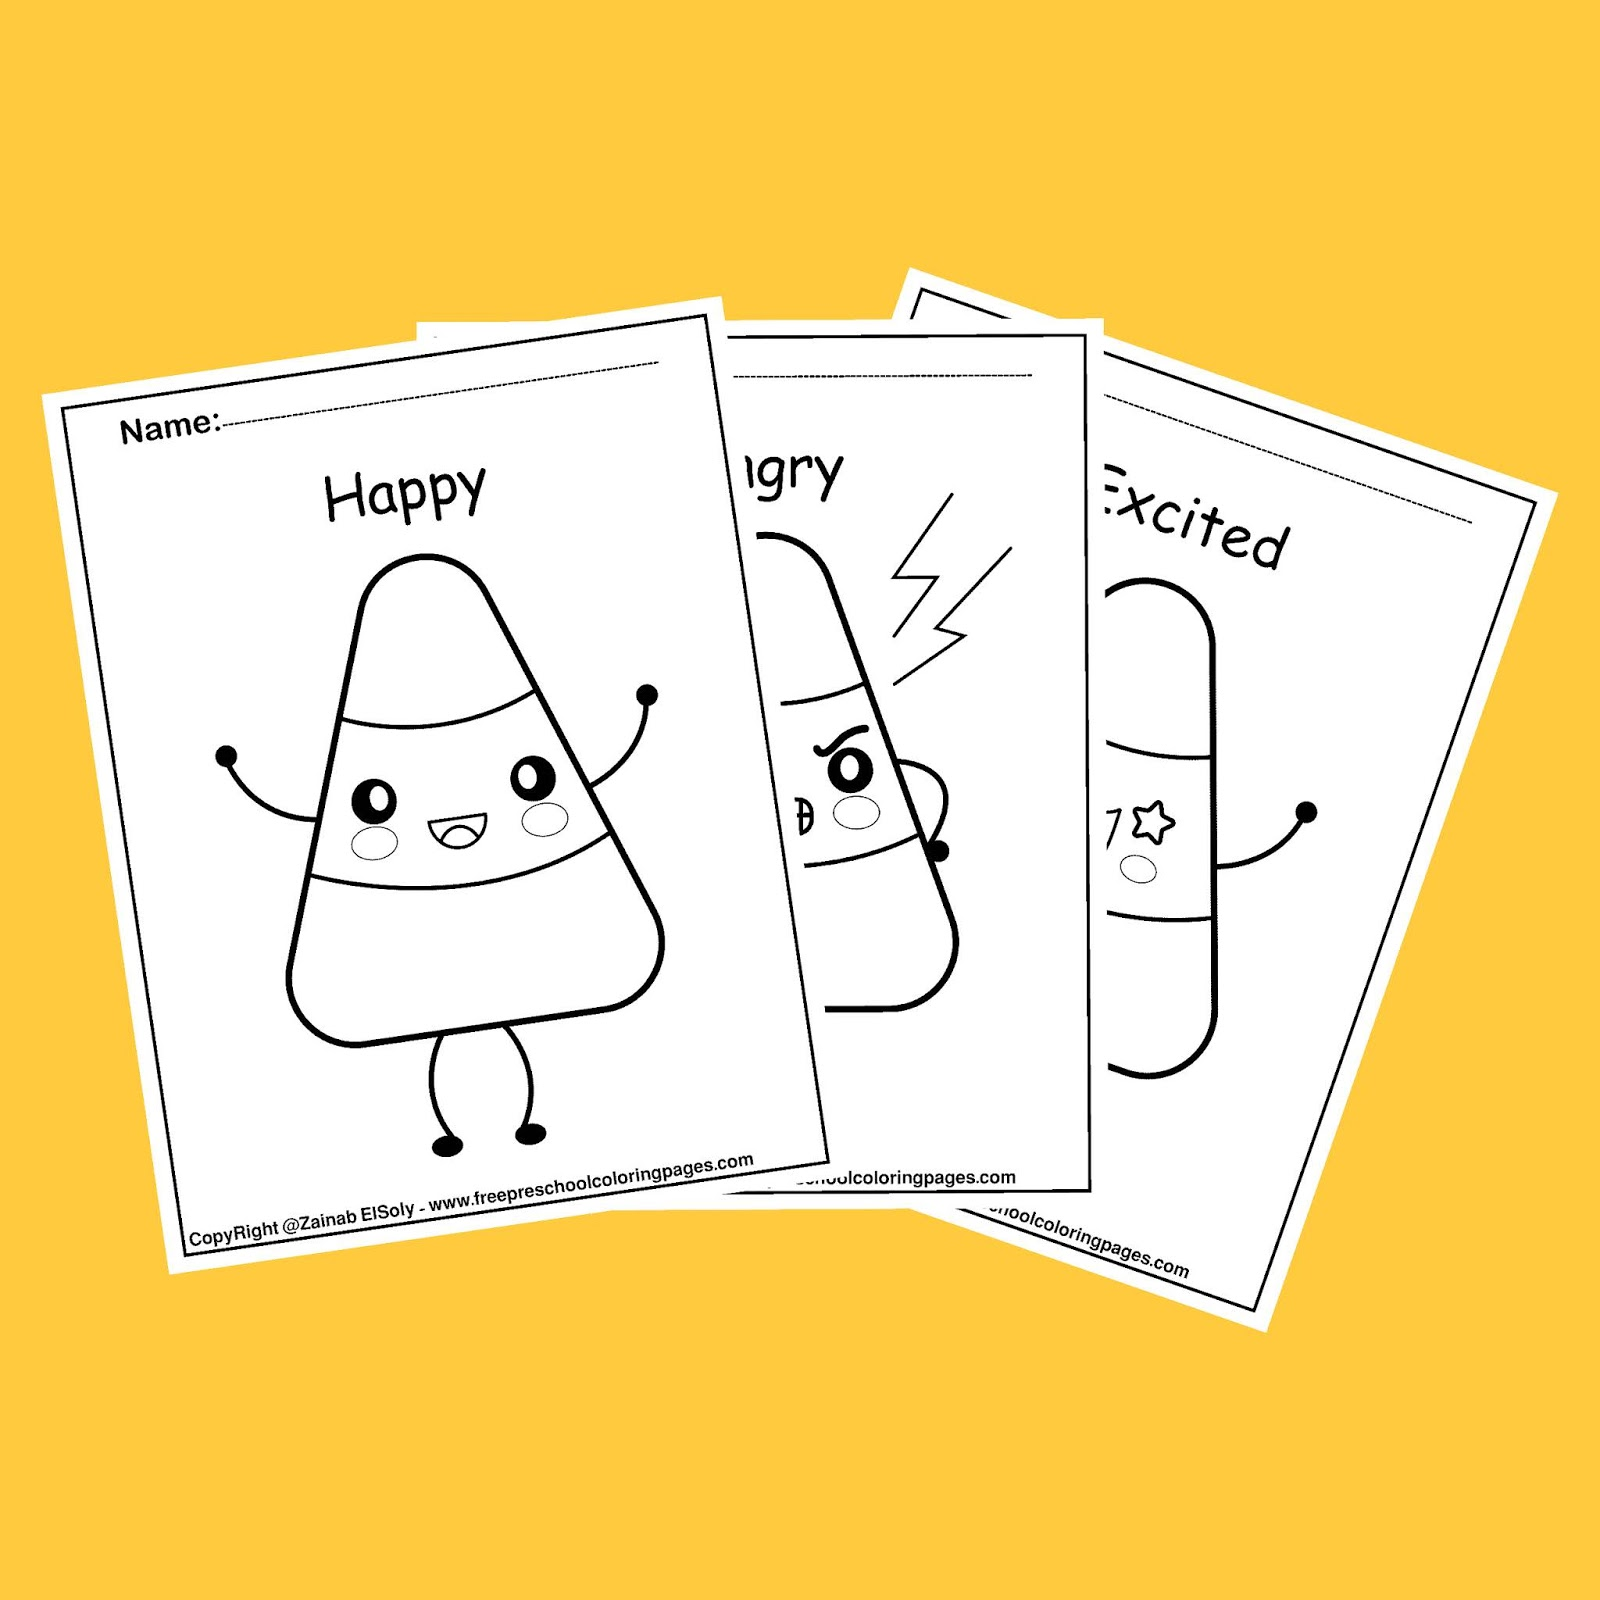 Emotions Coloring Pages - Help Kids With Feelings | Emotional ... | 1600x1600